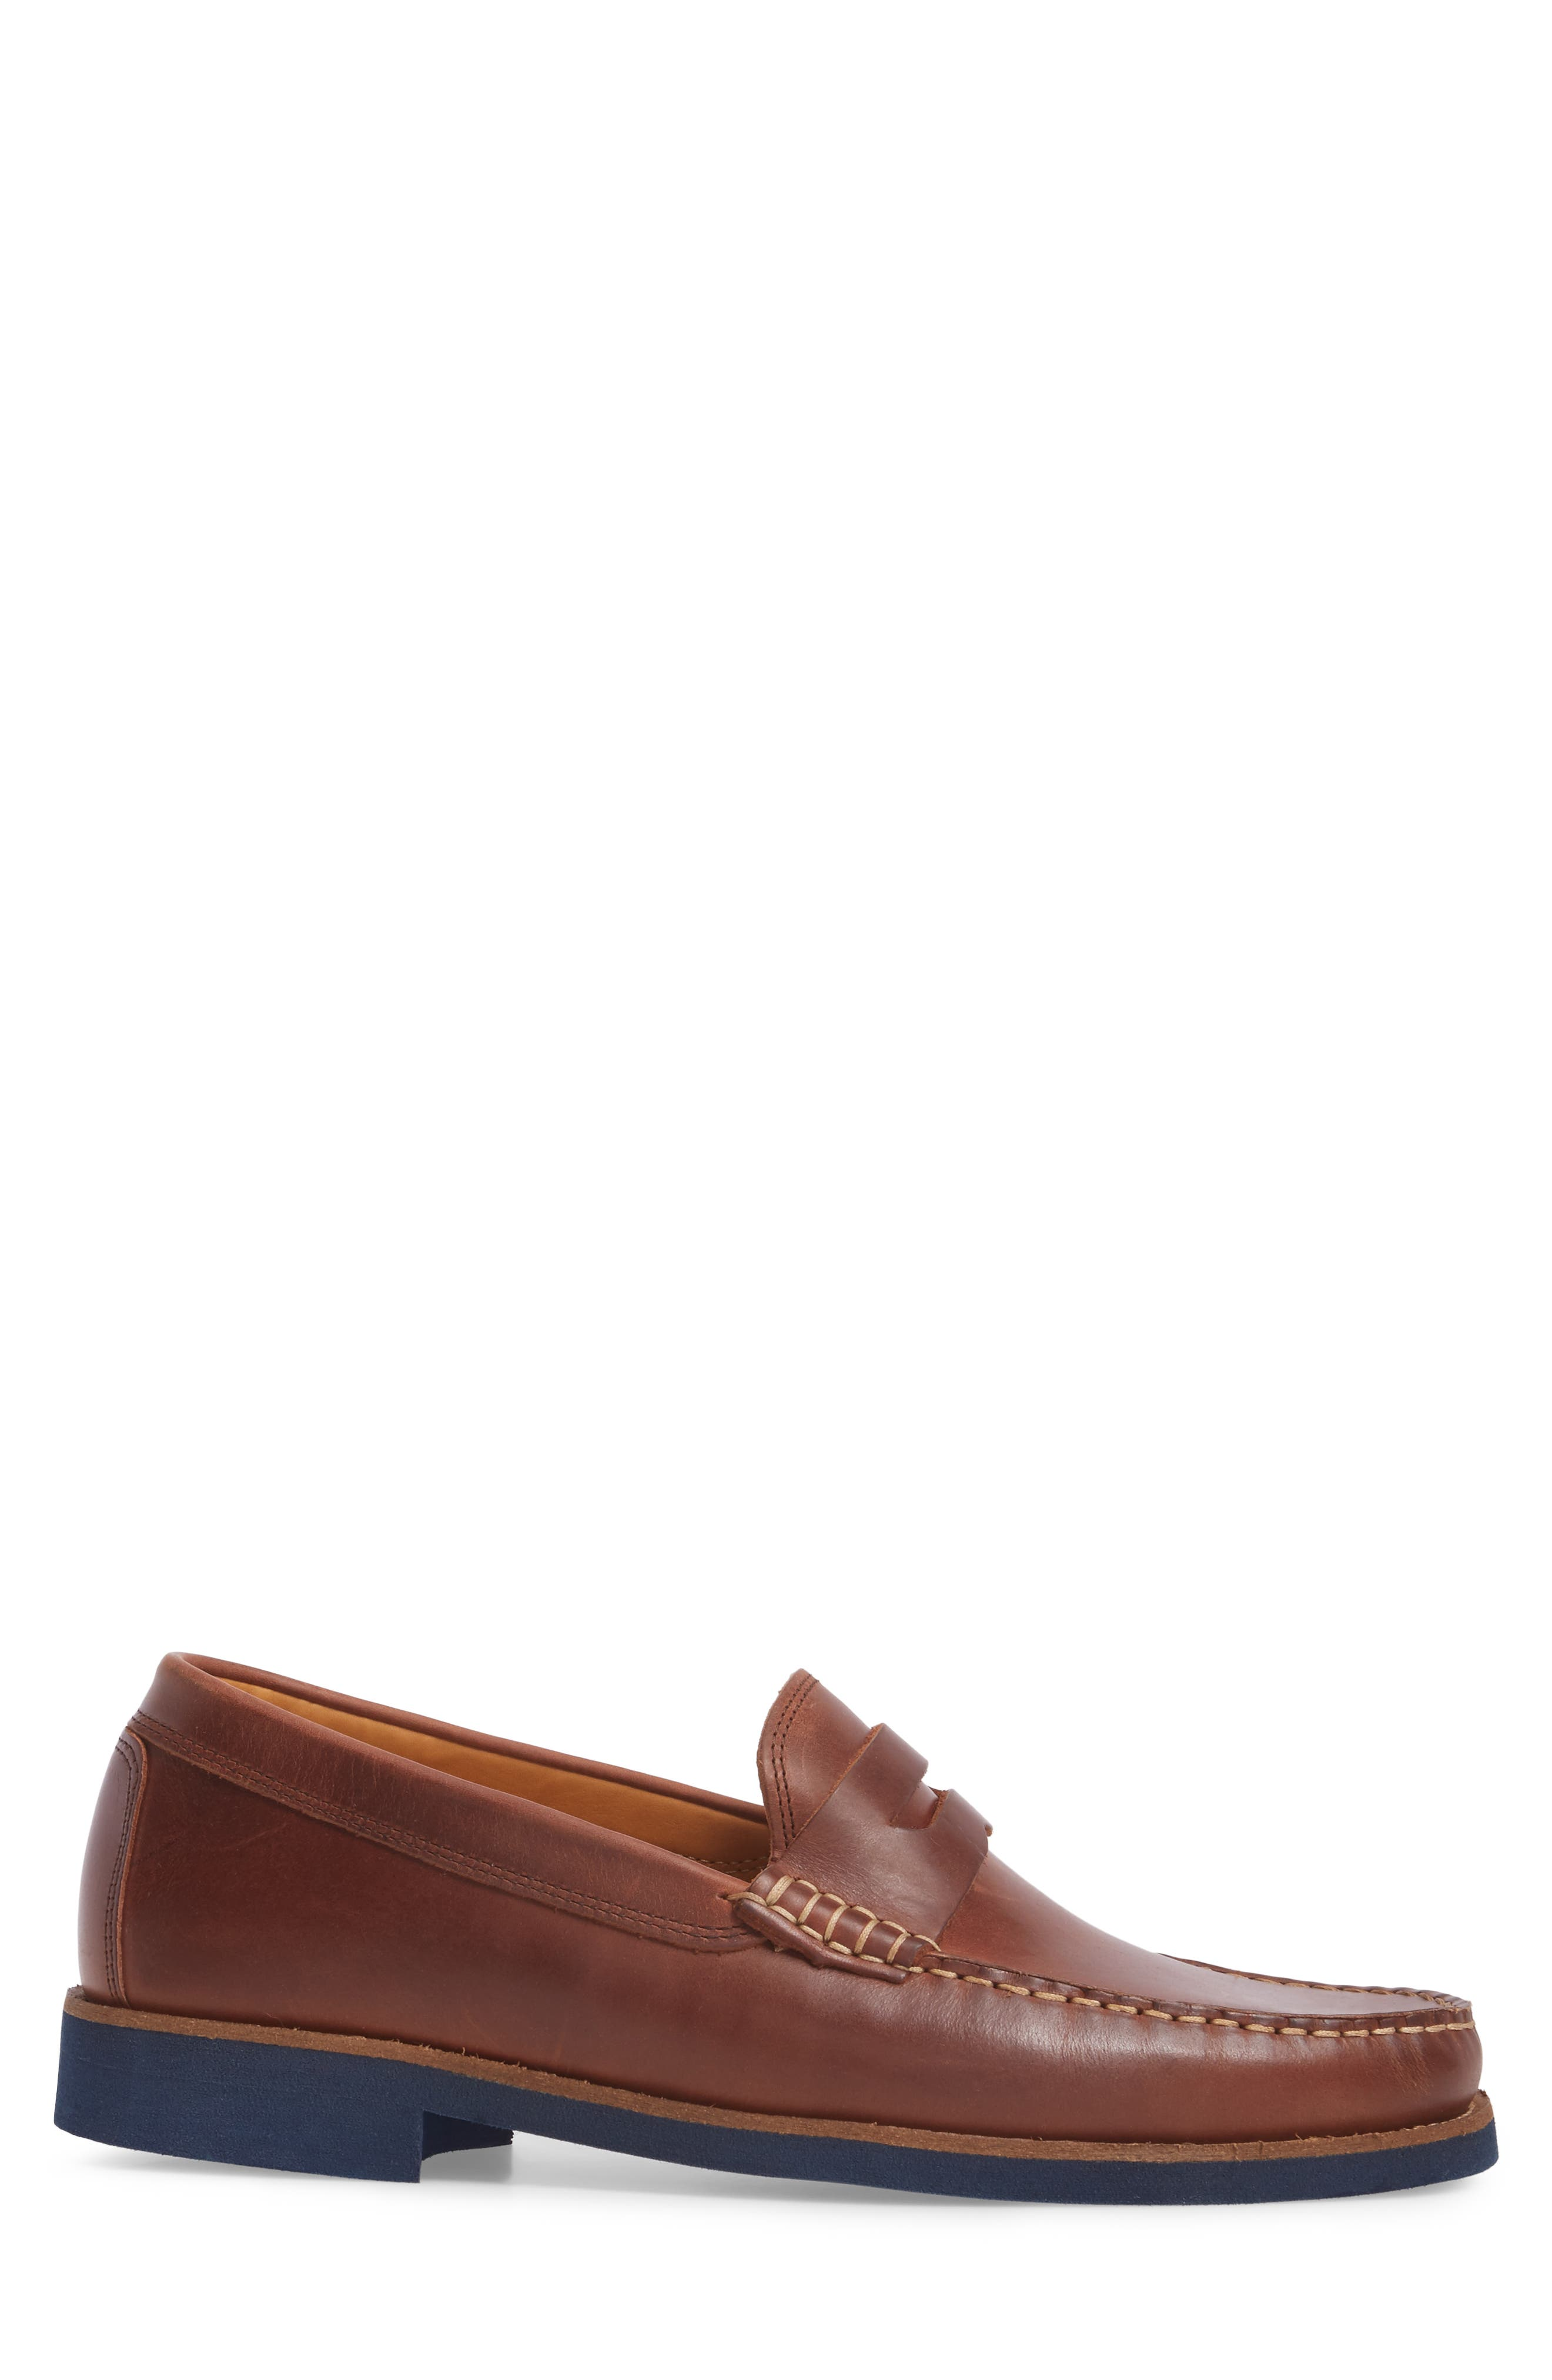 Lincolns Penny Loafer,                             Alternate thumbnail 3, color,                             Light Brown